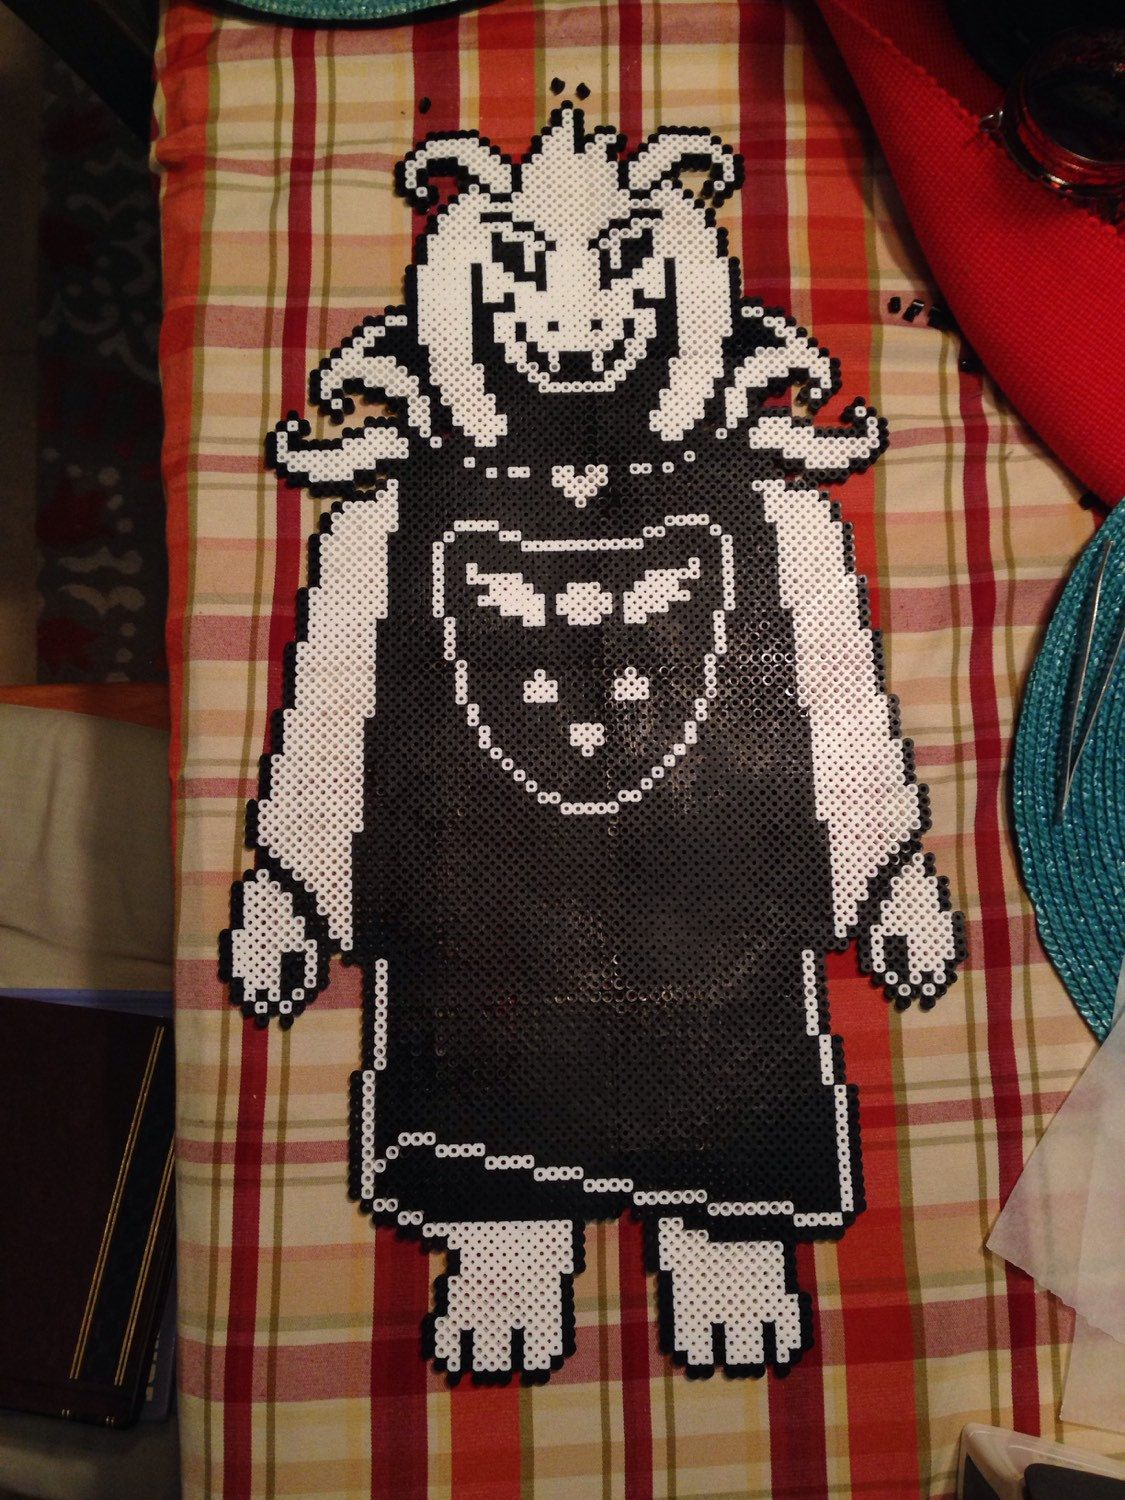 Asriel Dreemur Undertale Perler Beads By Perlerpixeldesigns